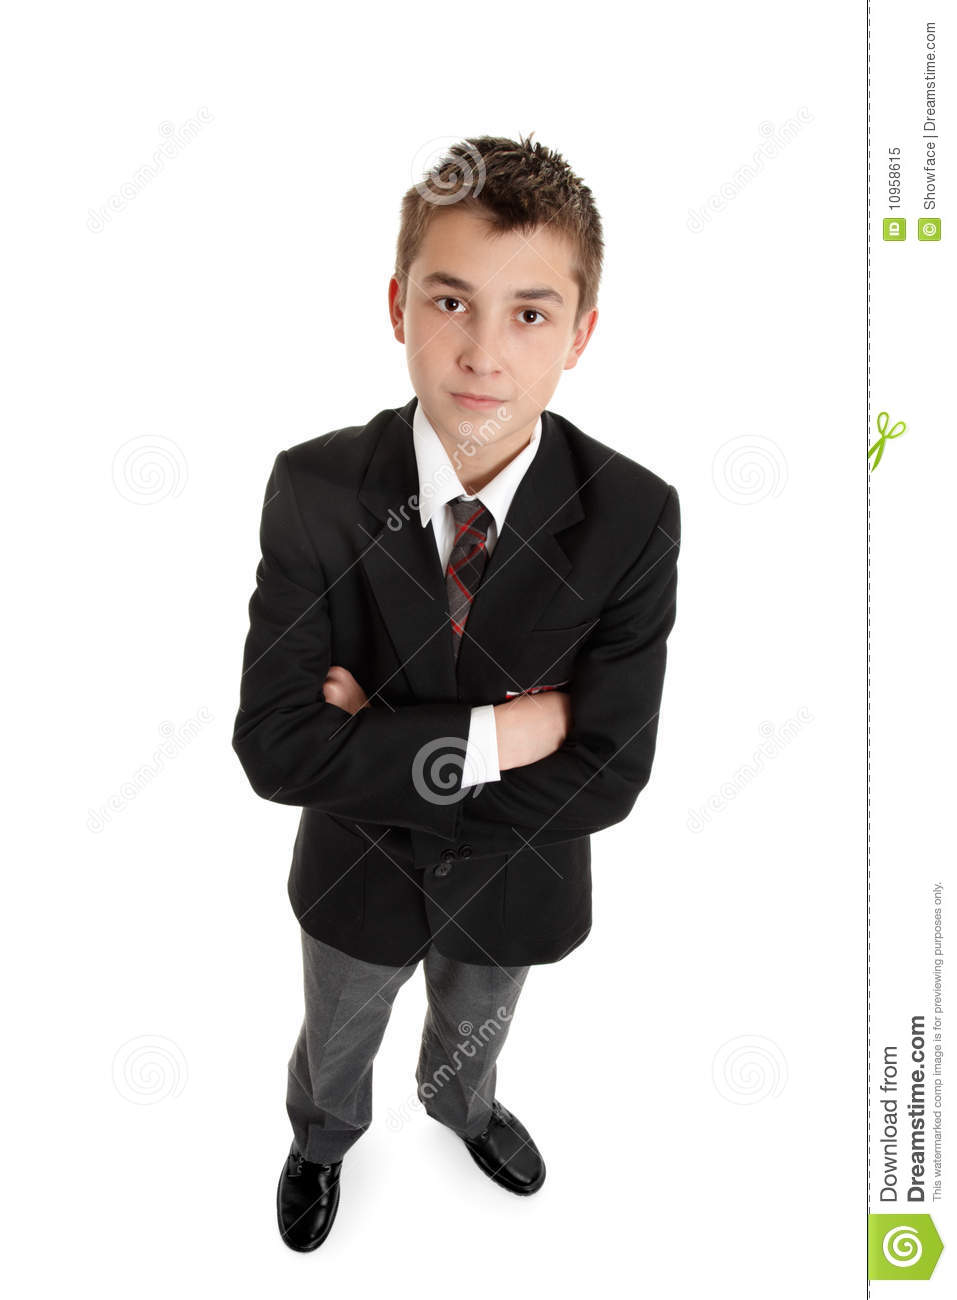 Serious Secondary Schoolboy In Uniform Stock Image - Image ...